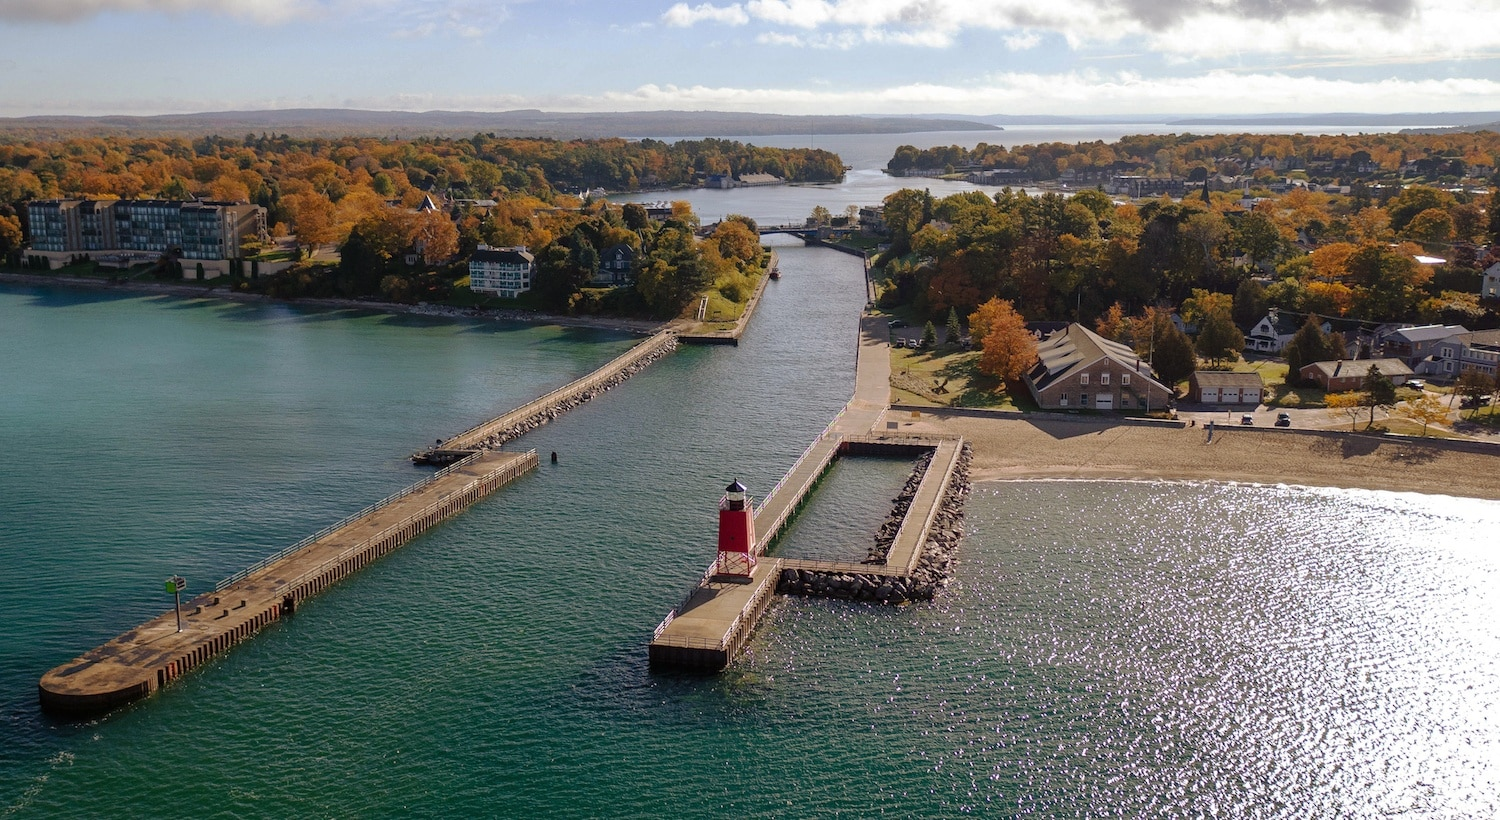 The Best Place to Travel in October? Charlevoix, MI